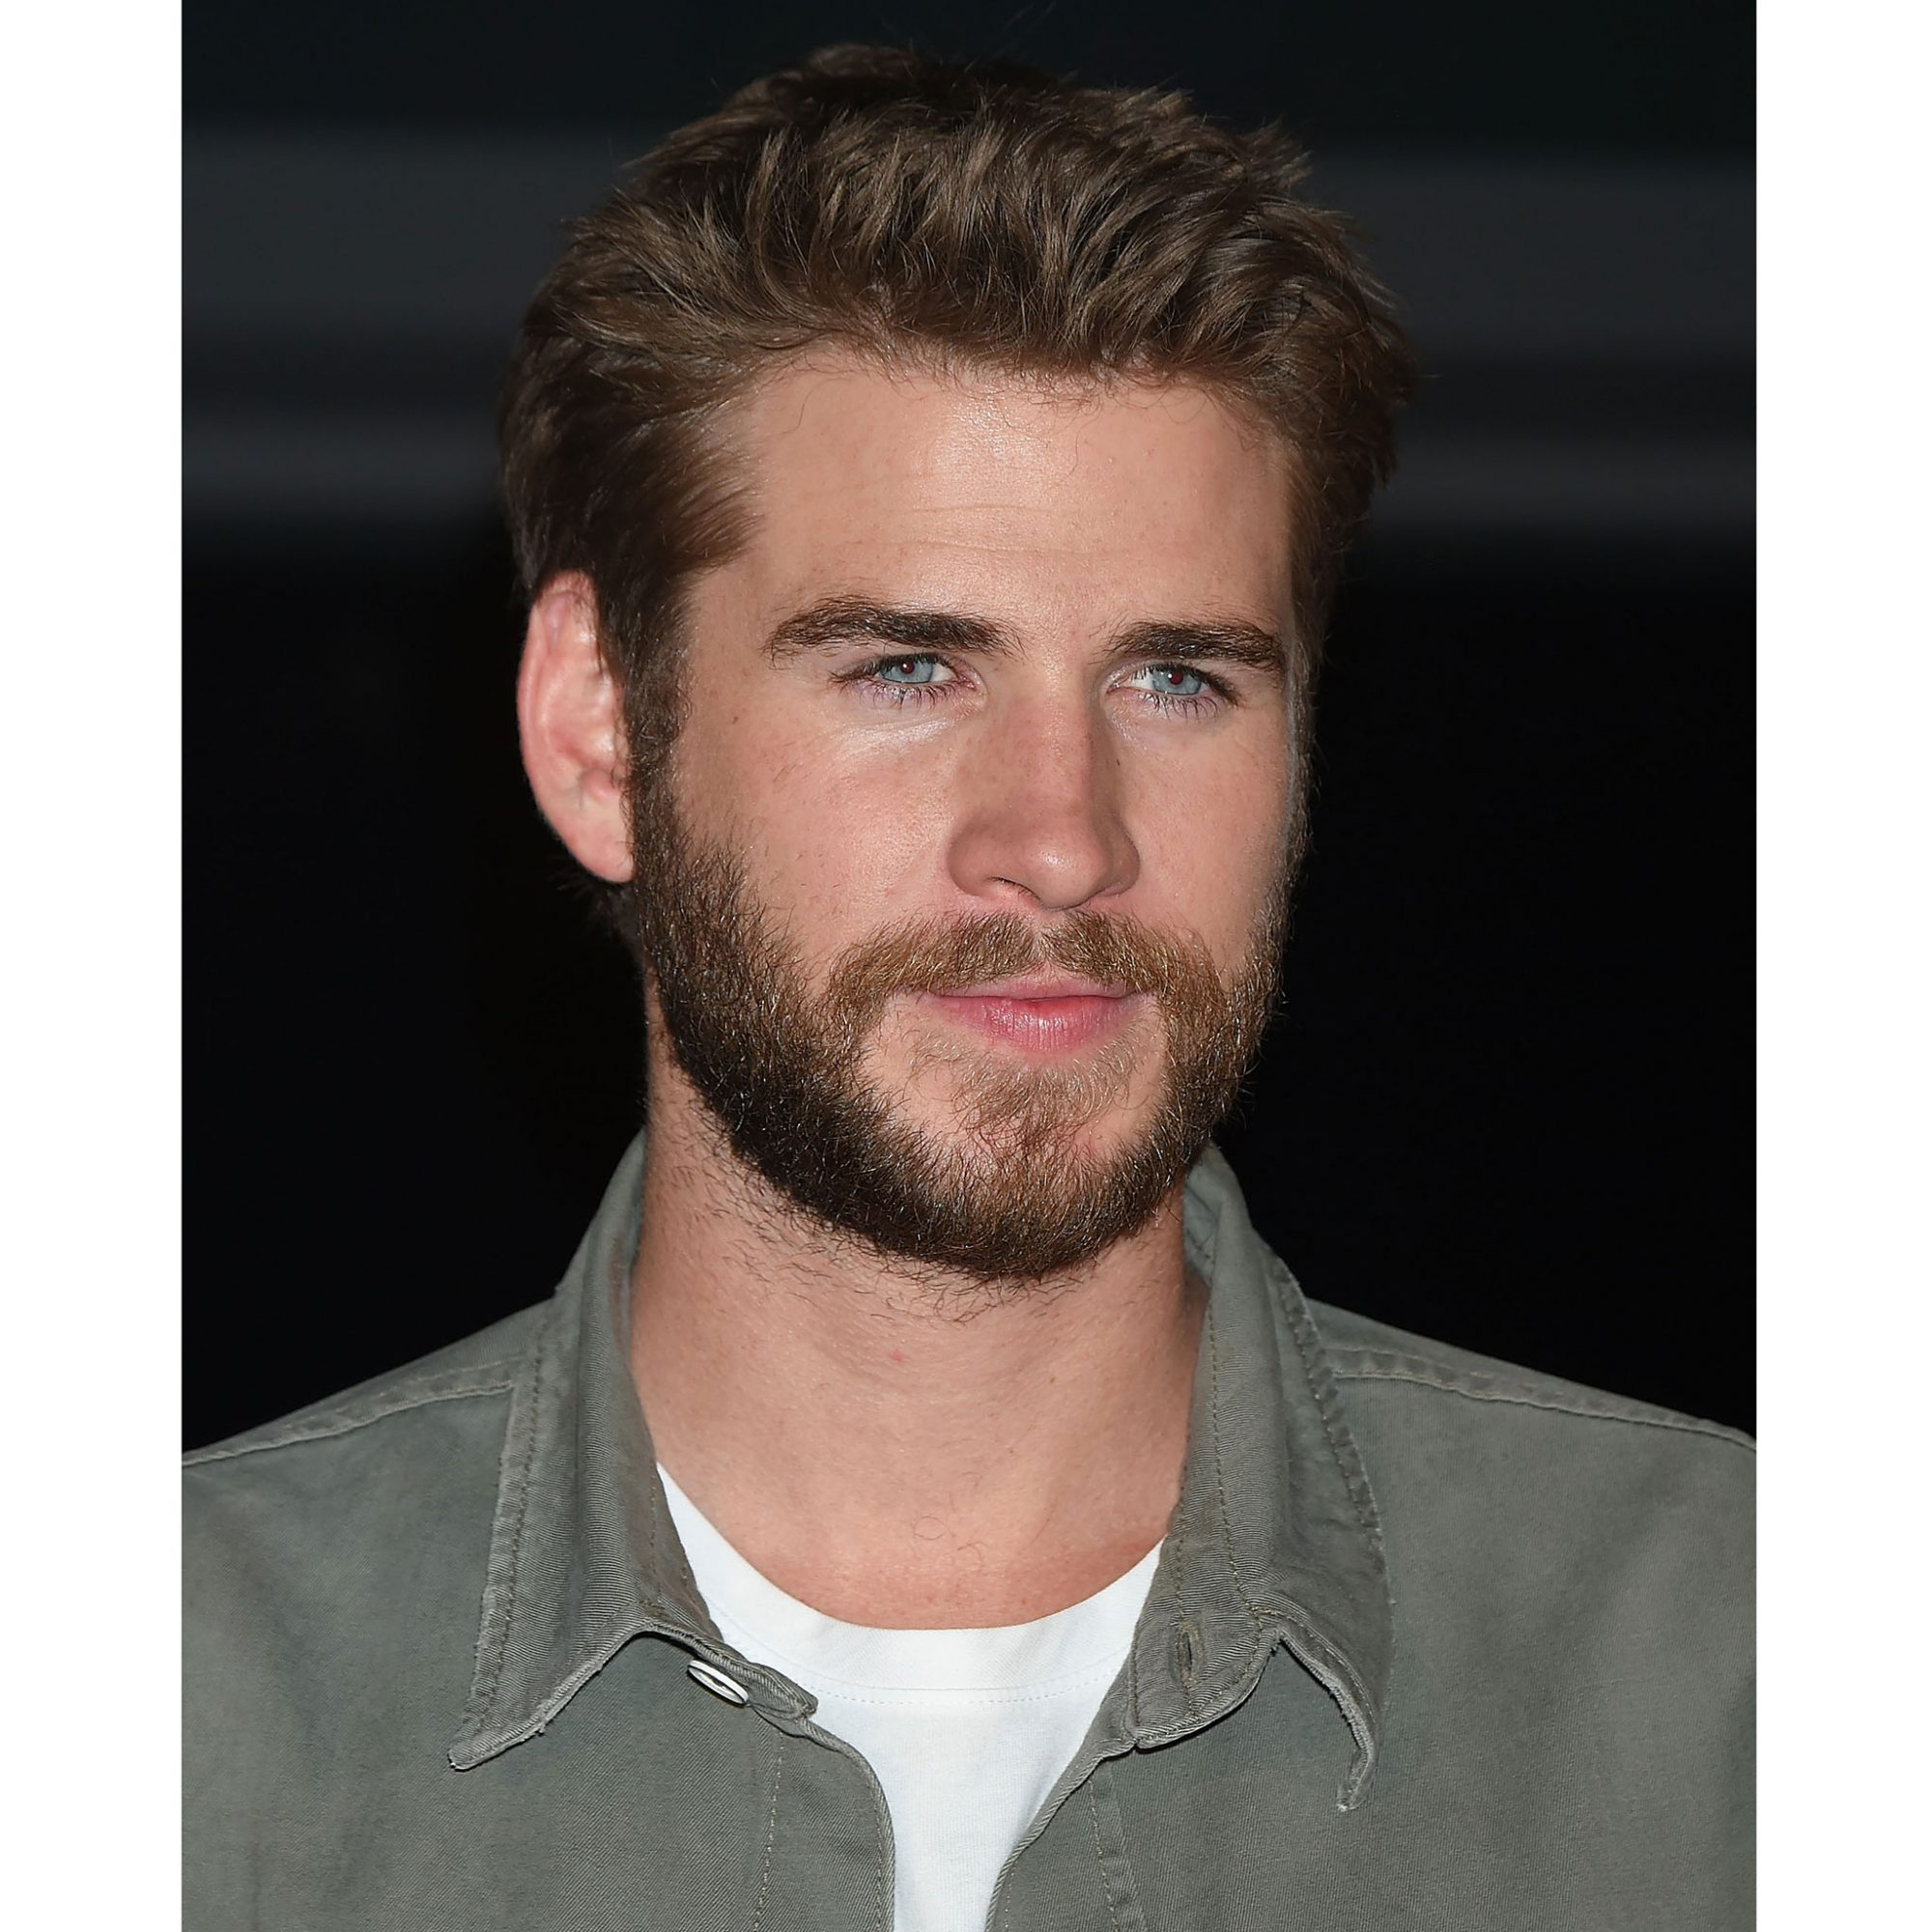 liam-hemsworth-named-sexiest-vegetarian-fwx